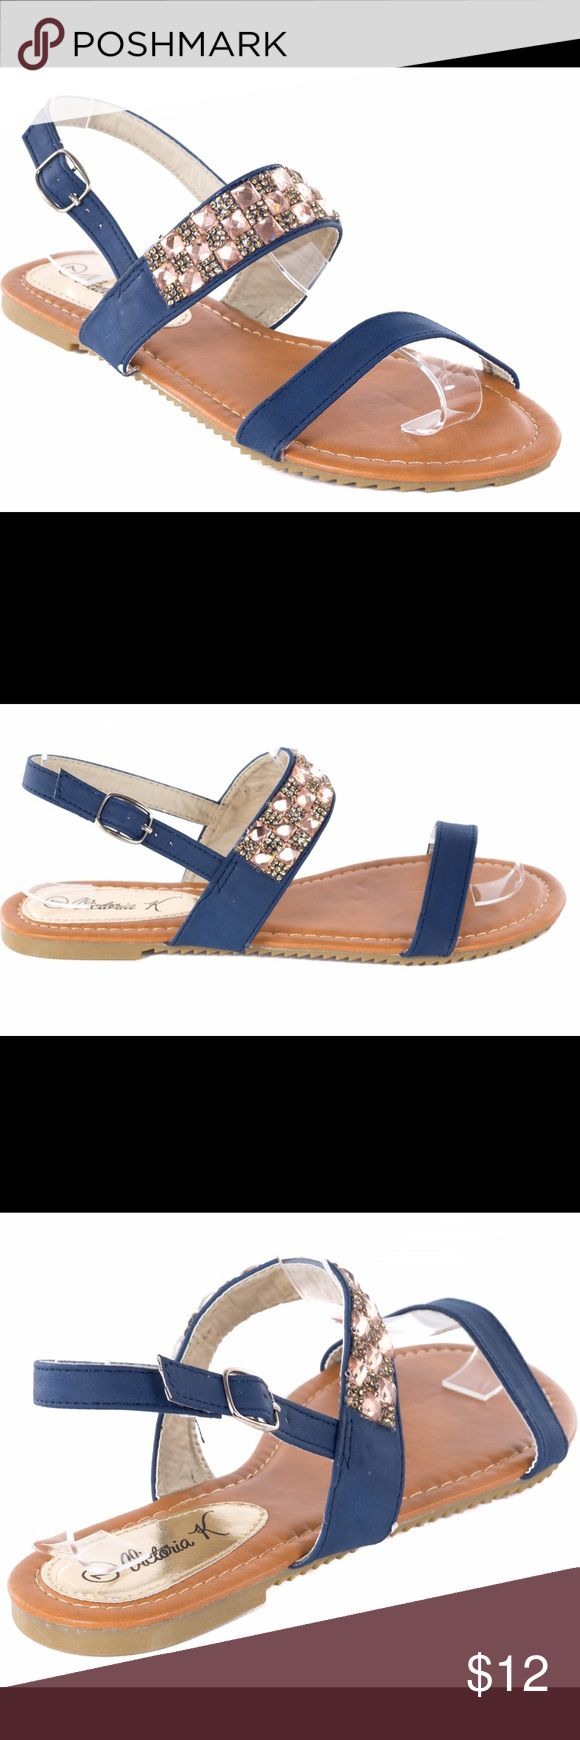 Women Slingback Navy Summer Sandals S1971A Gorgeous sandals for a young lady or a woman who knows shoe fashion. Perfect for walks on the beach during a vacation in the summer. Victoria K Shoes Sandals